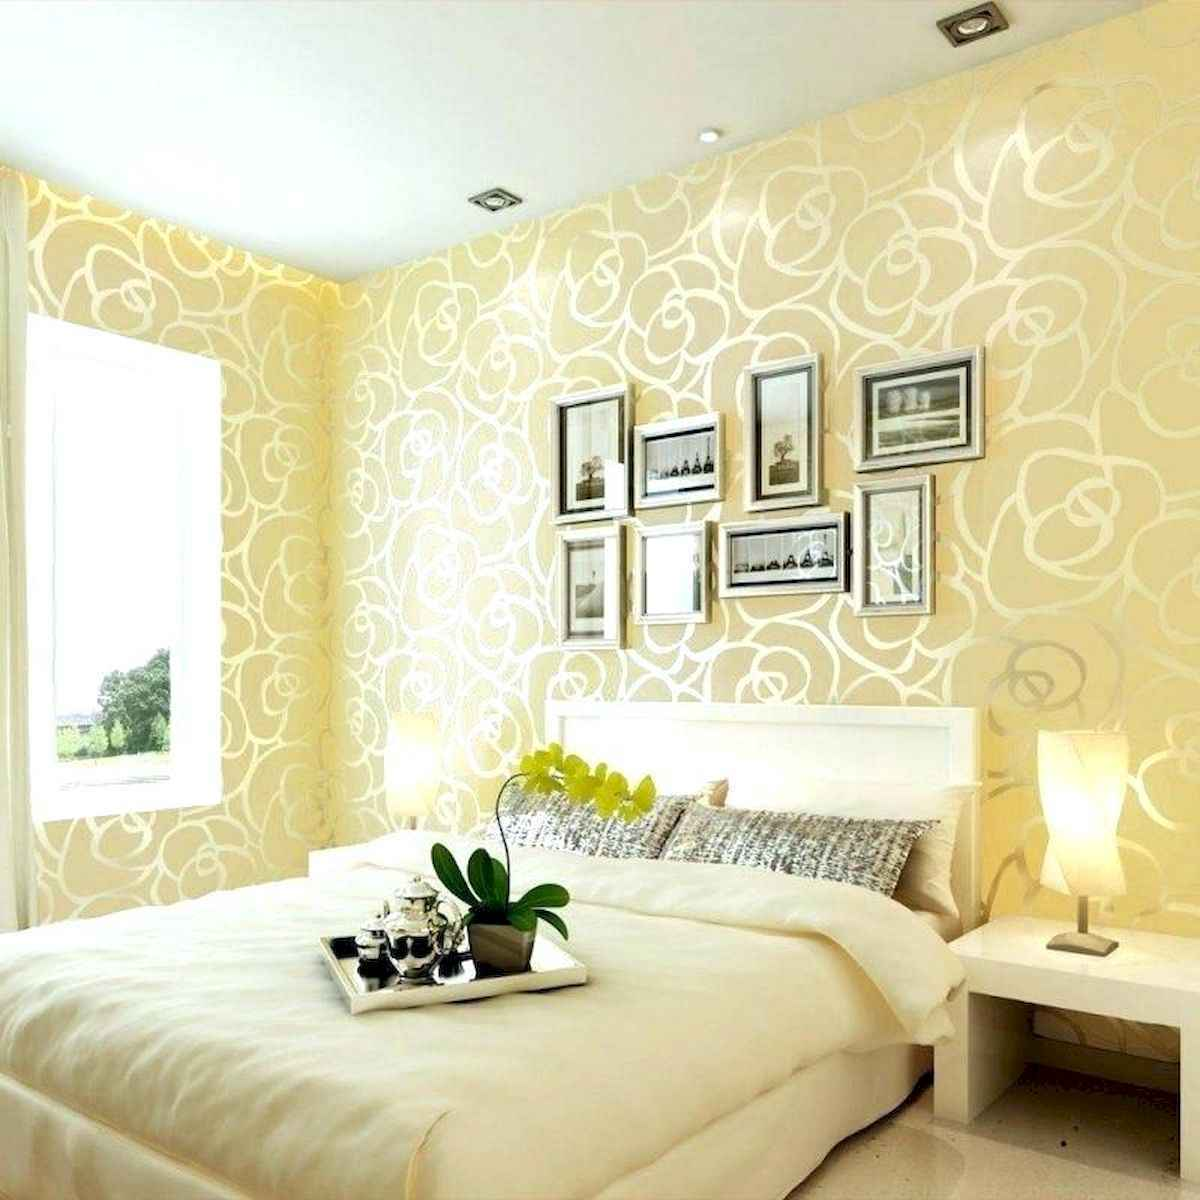 40 Awesome Wall Painting Ideas For Home (28)